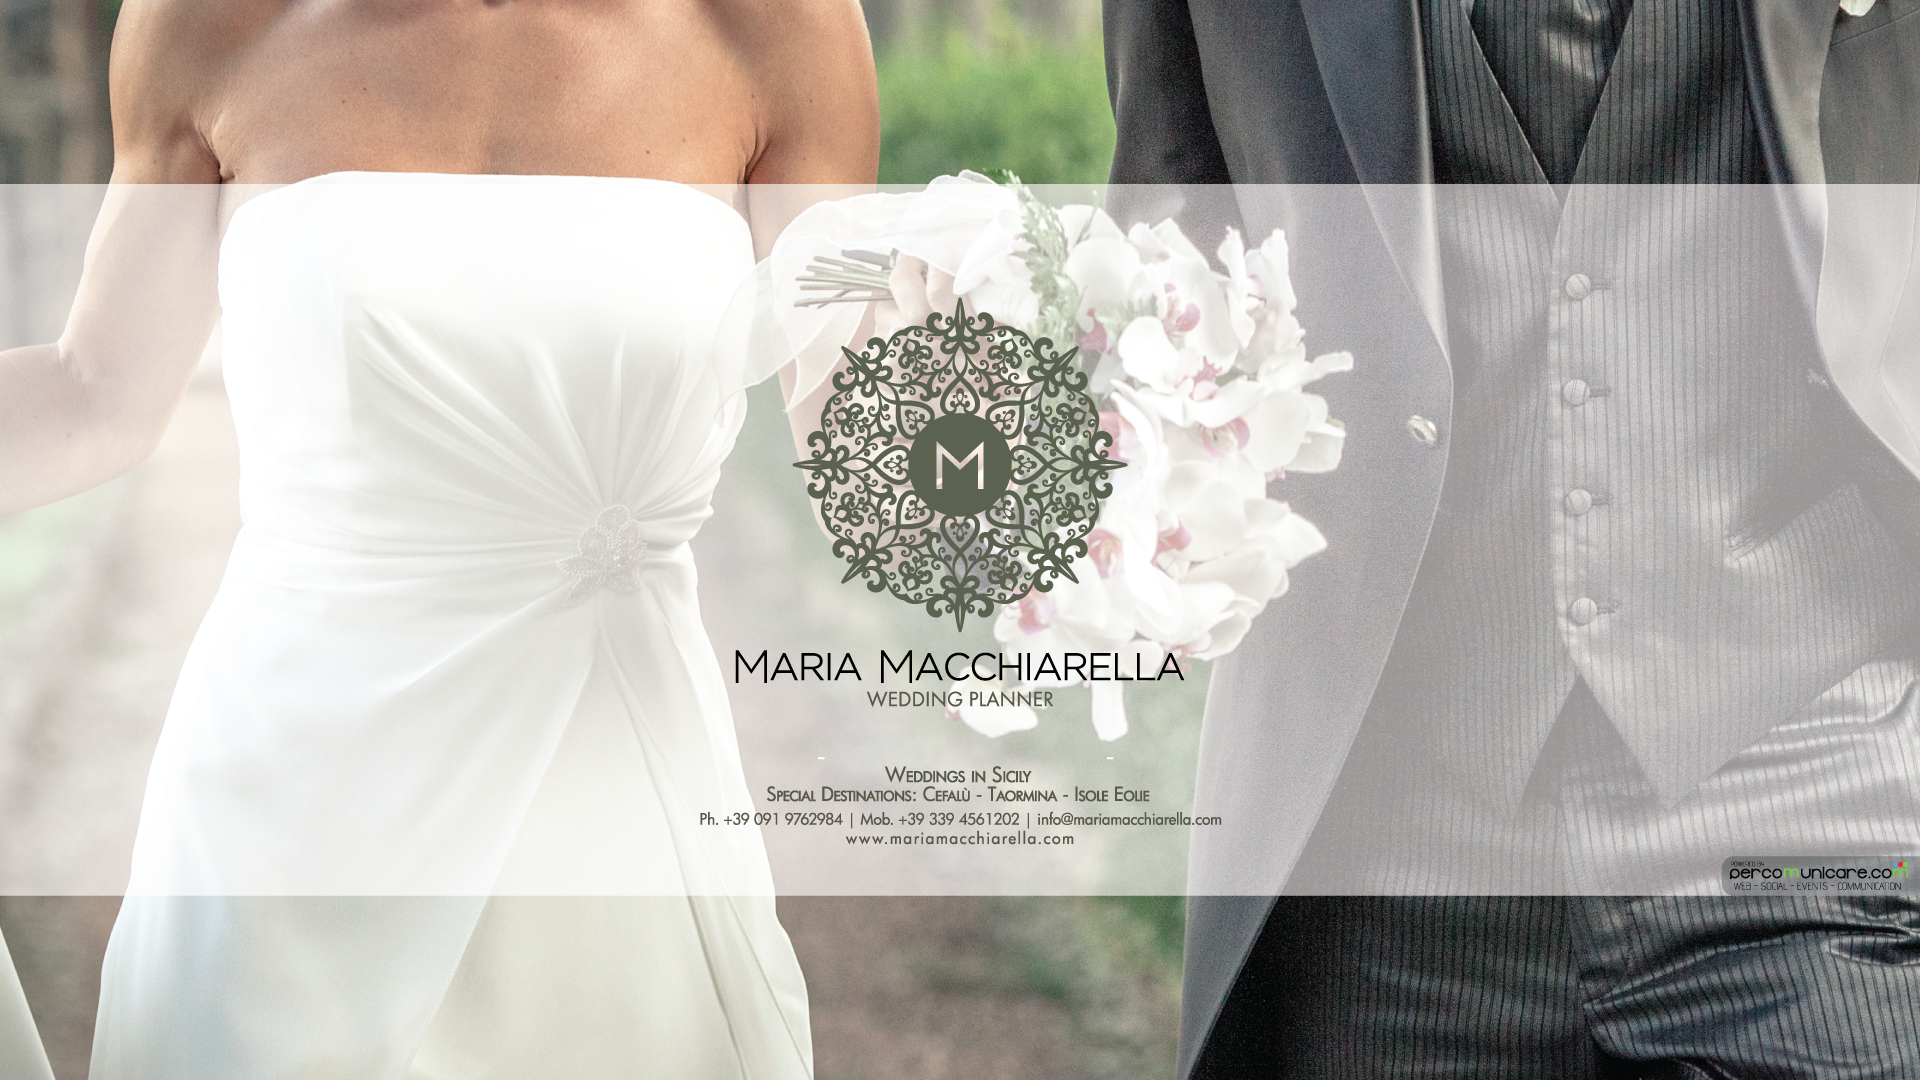 Maria Macchiarella Wedding Planner Luxury Wedding Designer